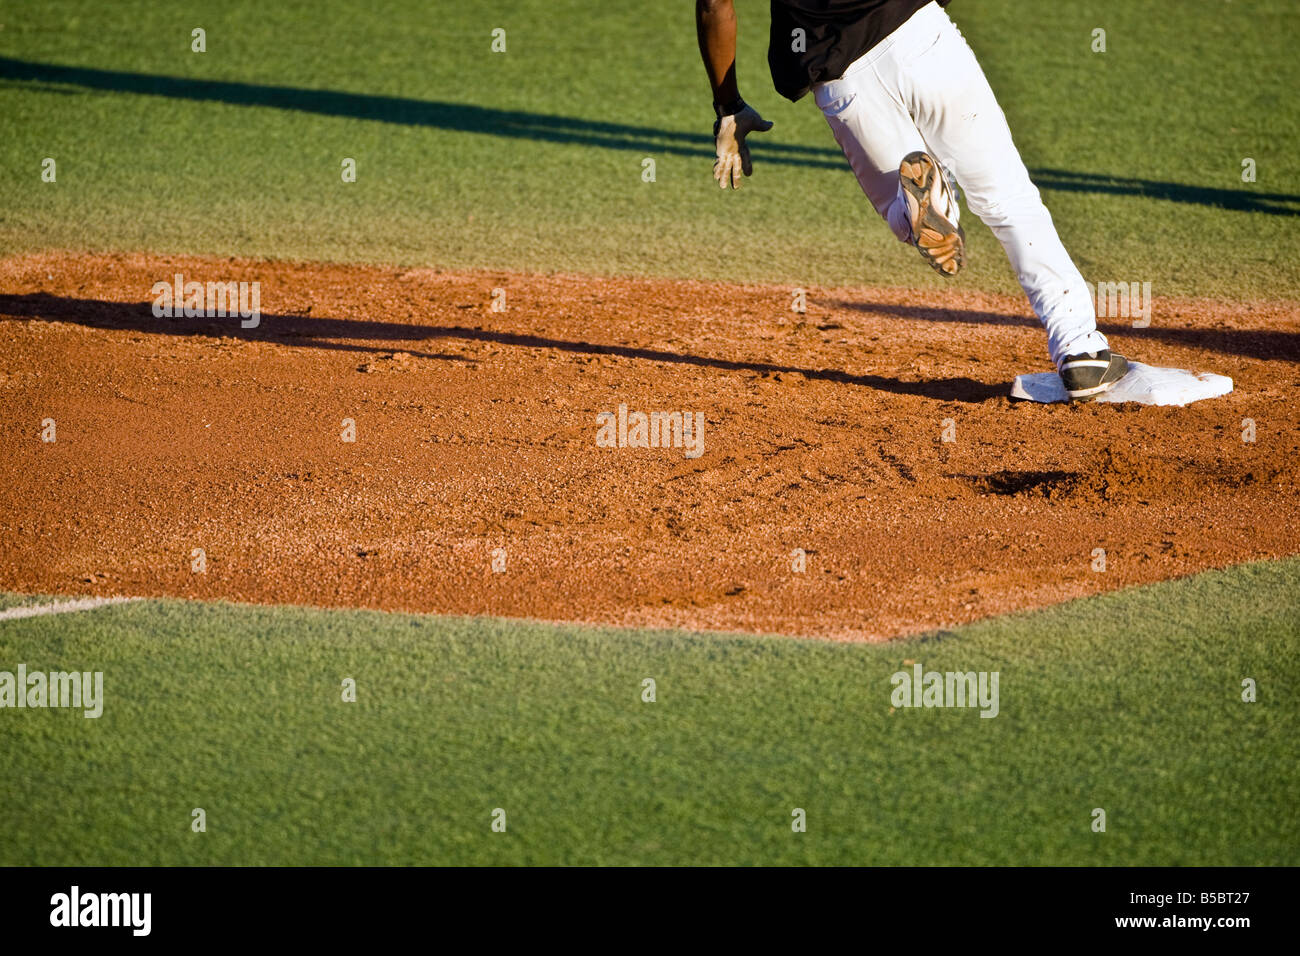 Baseball player running bases - Stock Image